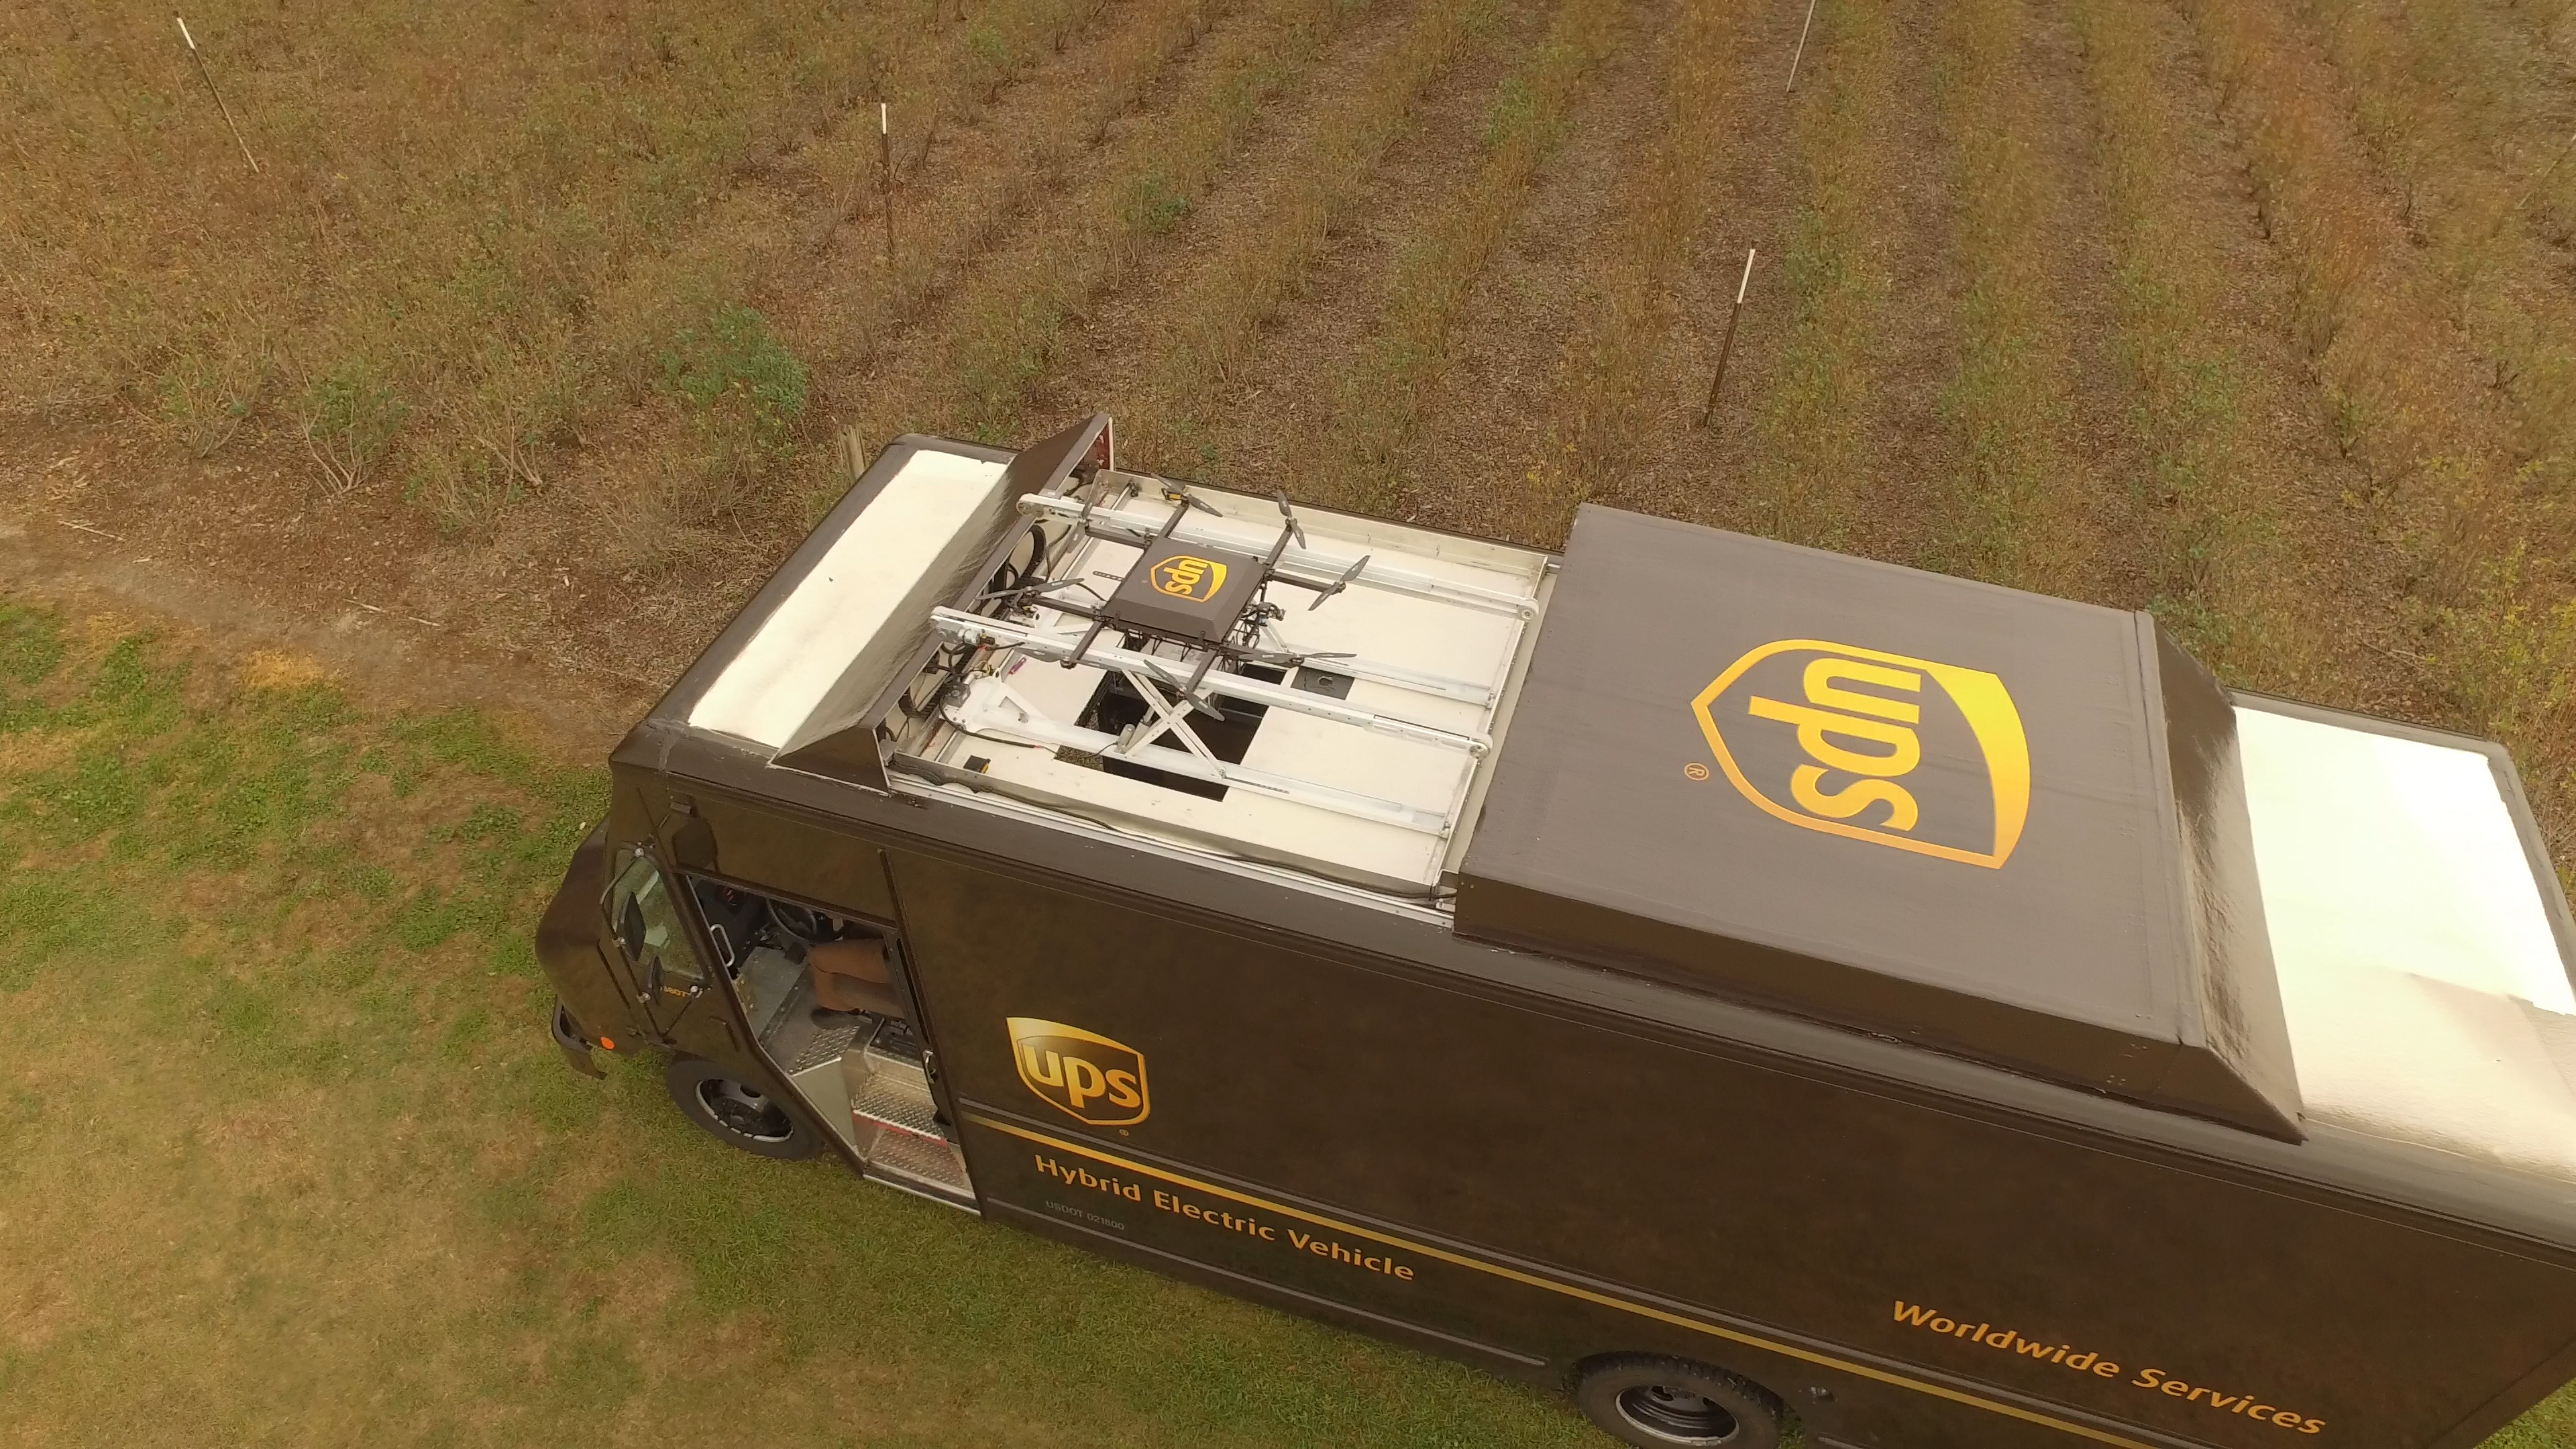 ups-florida-footage-01_03_37_11-still064